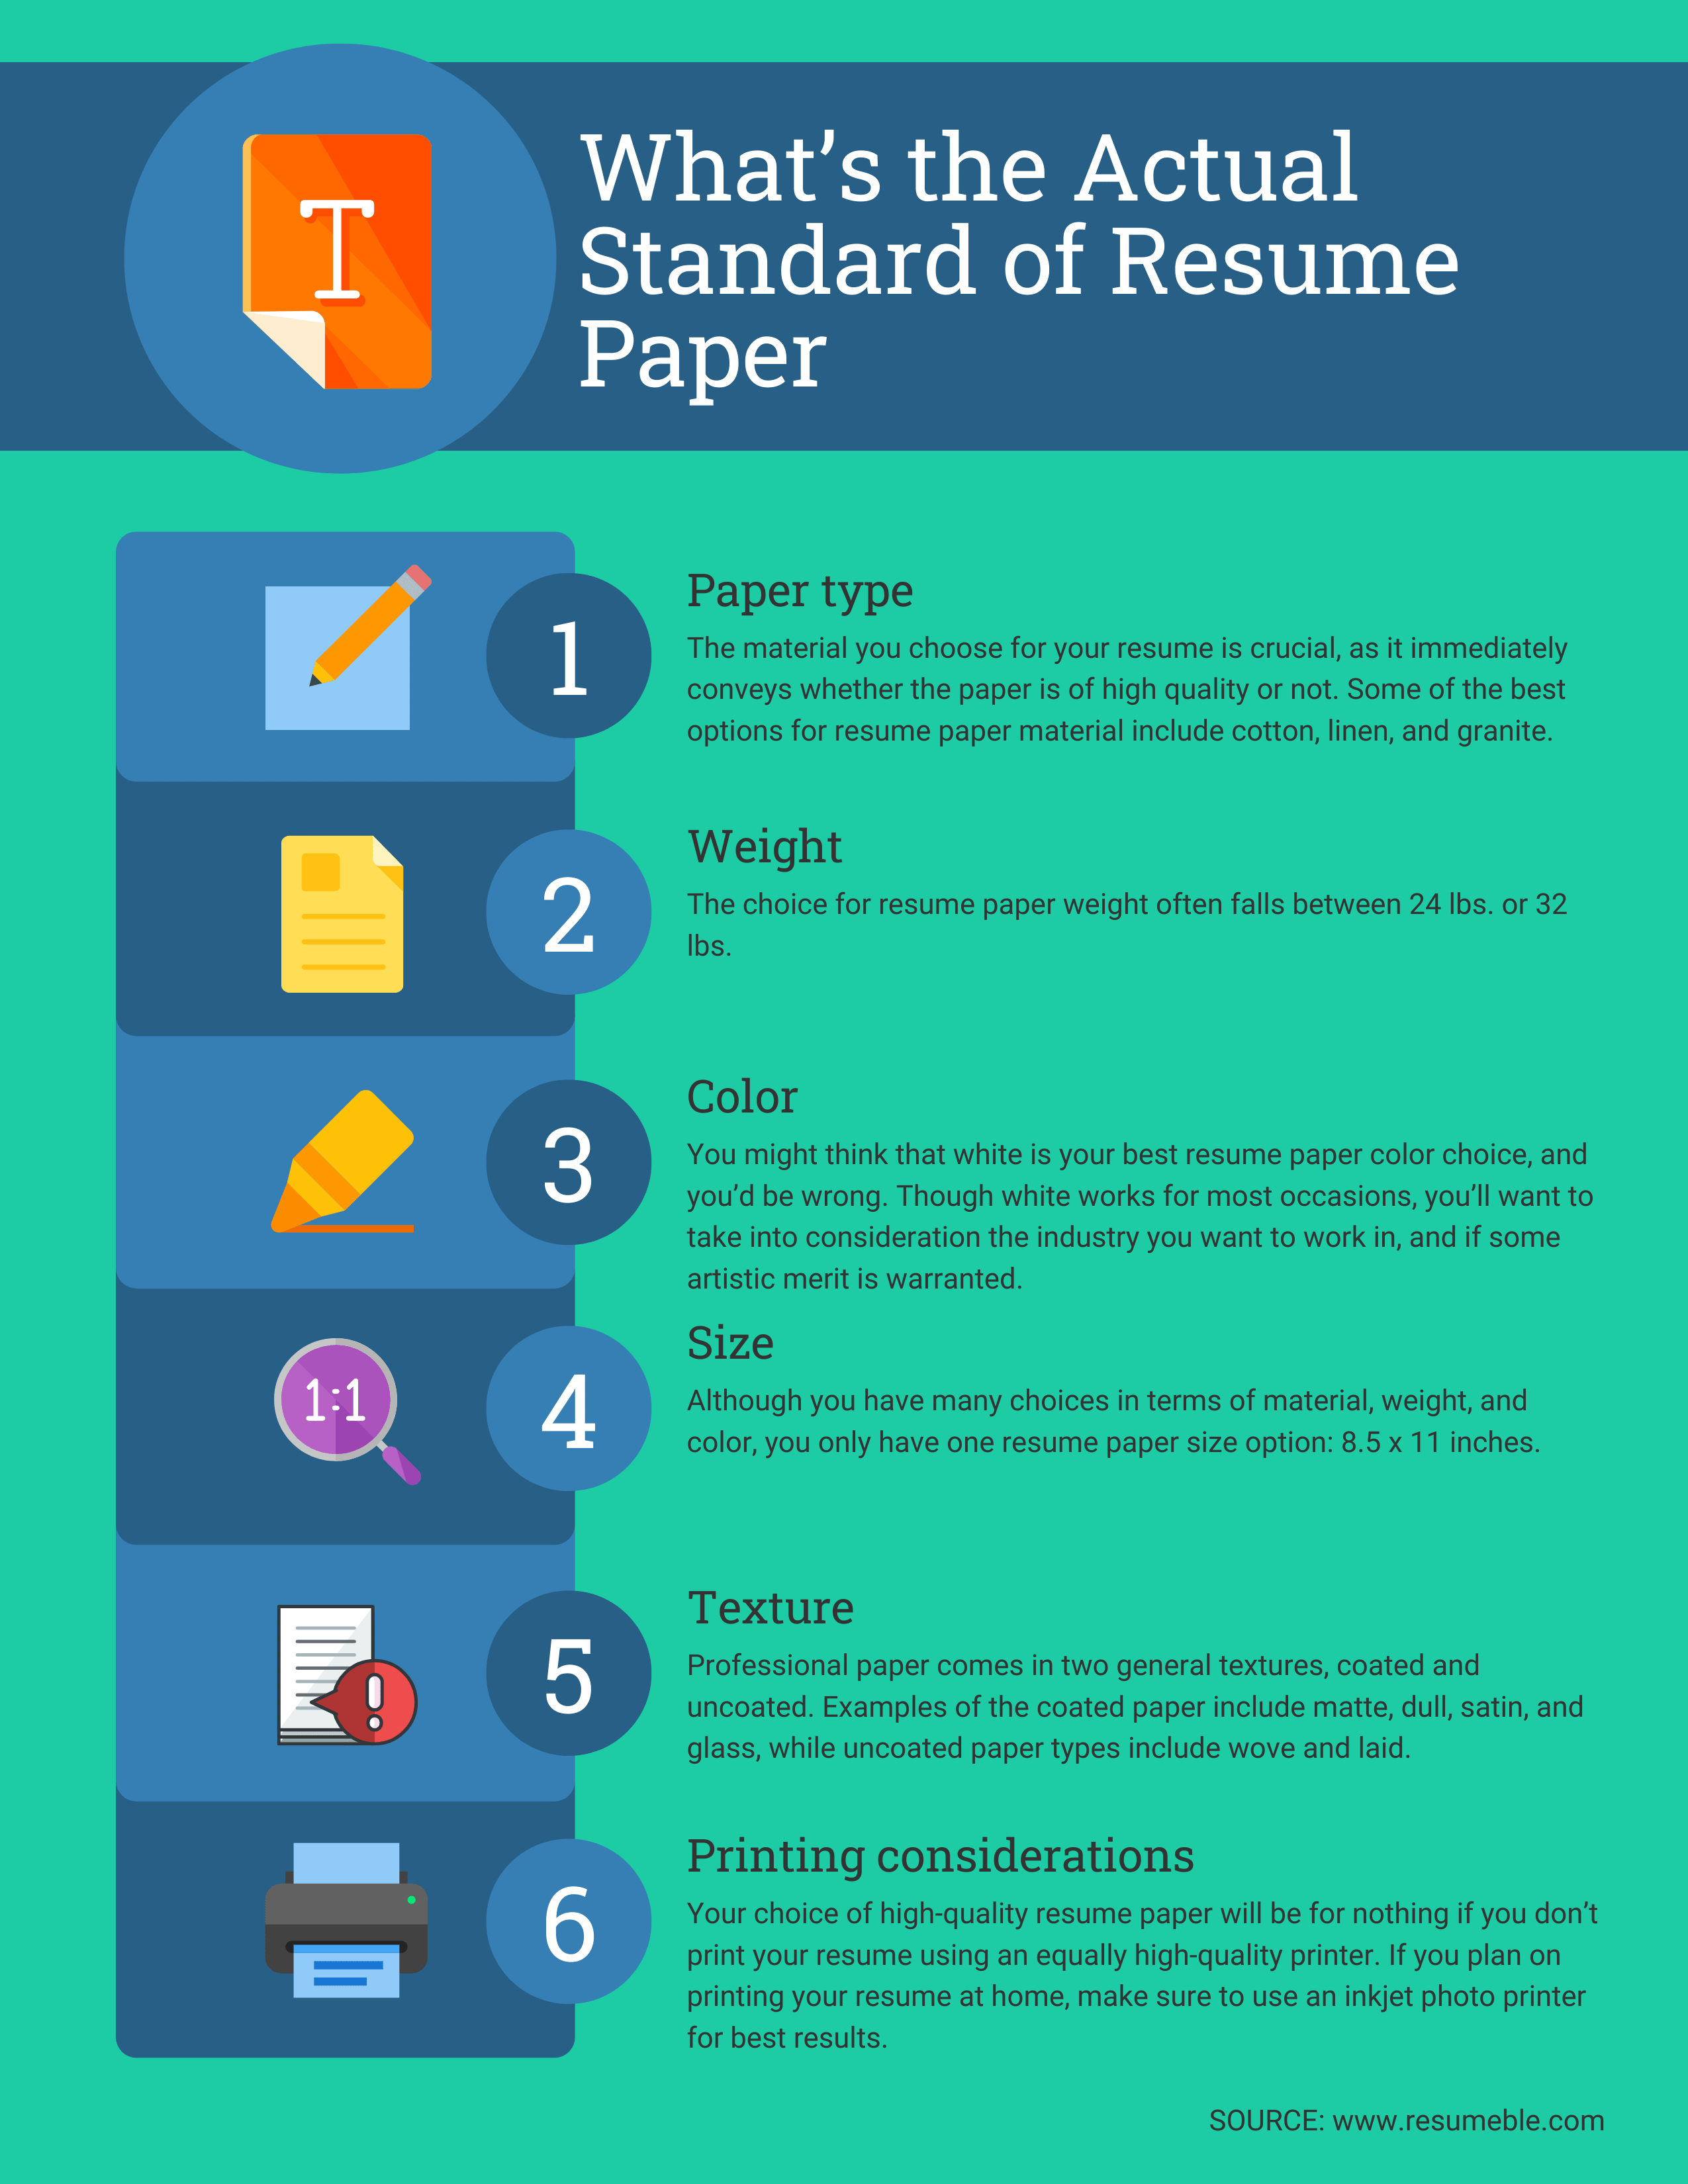 Standard resume paper weight custom writer service for phd